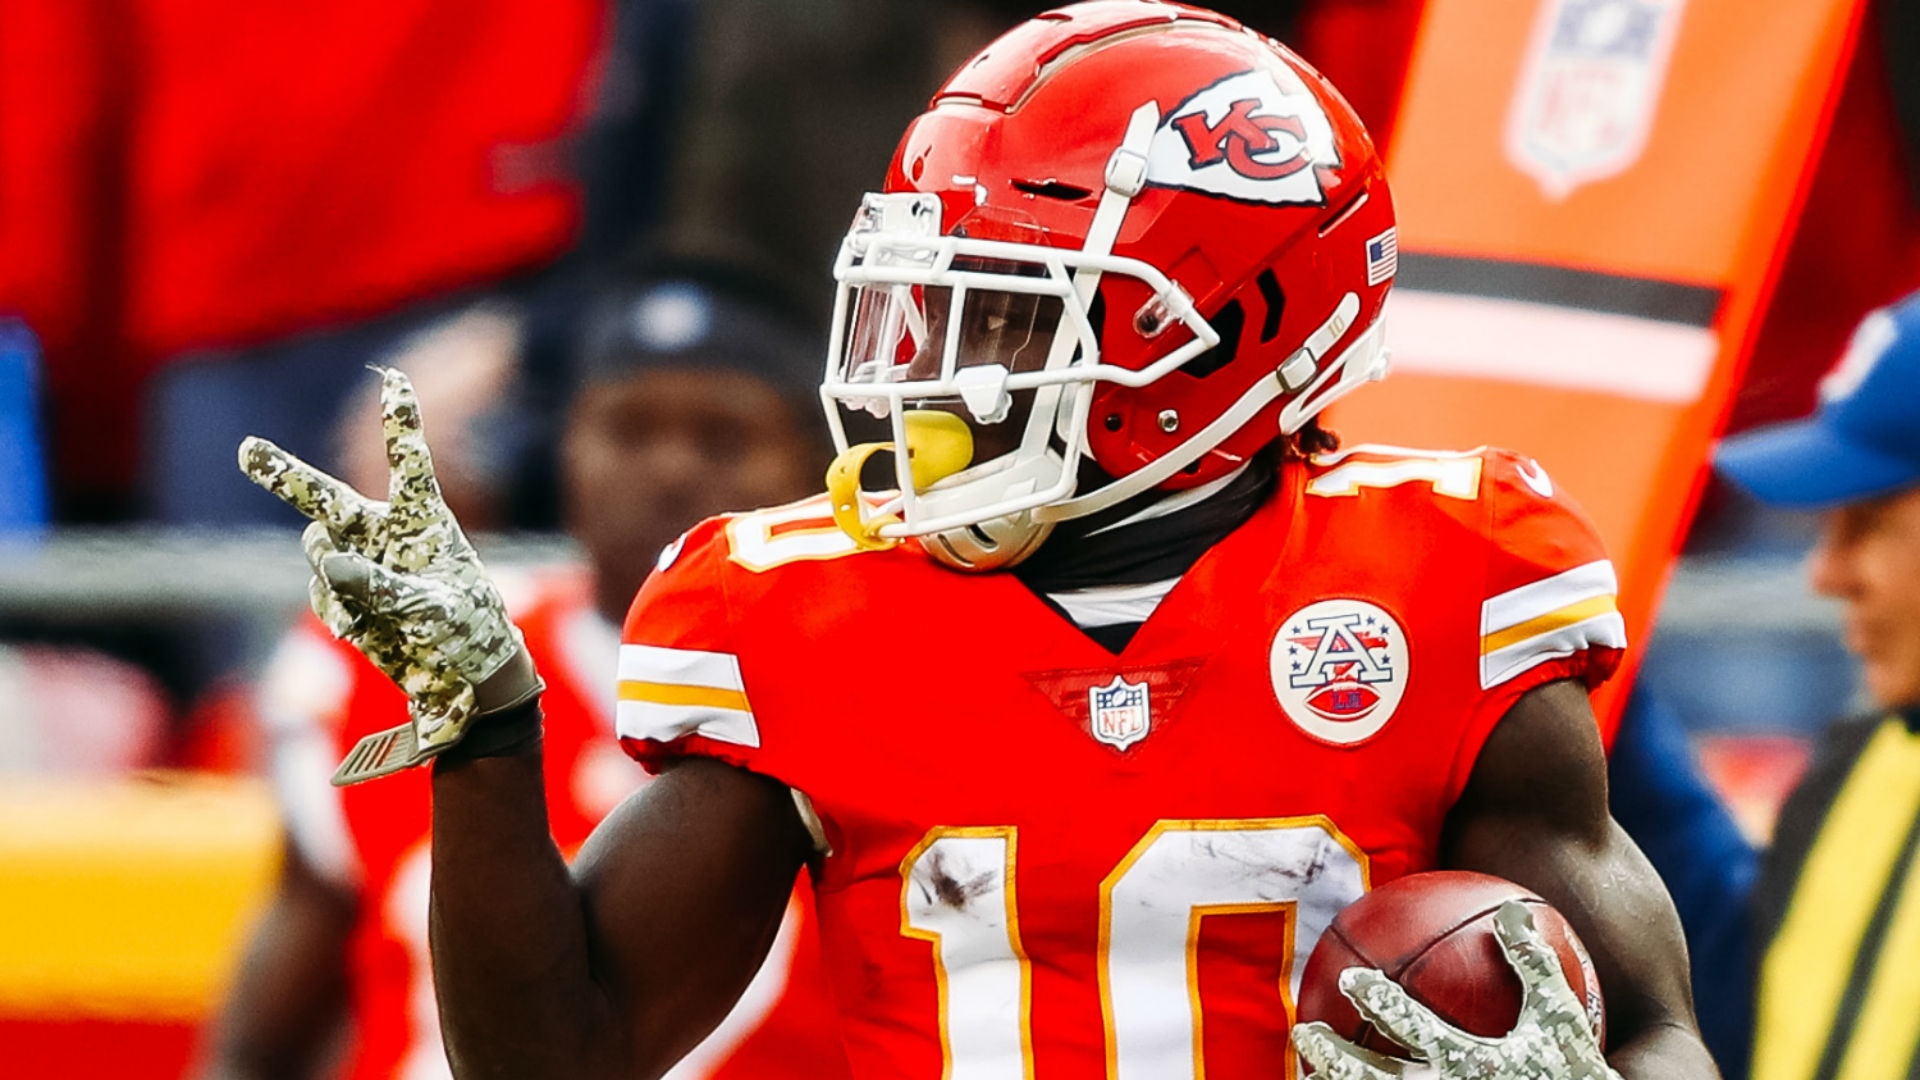 Tyreek Hill's timeline of trouble: From a domestic violence arrest in college to child abuse investigation with Chiefs